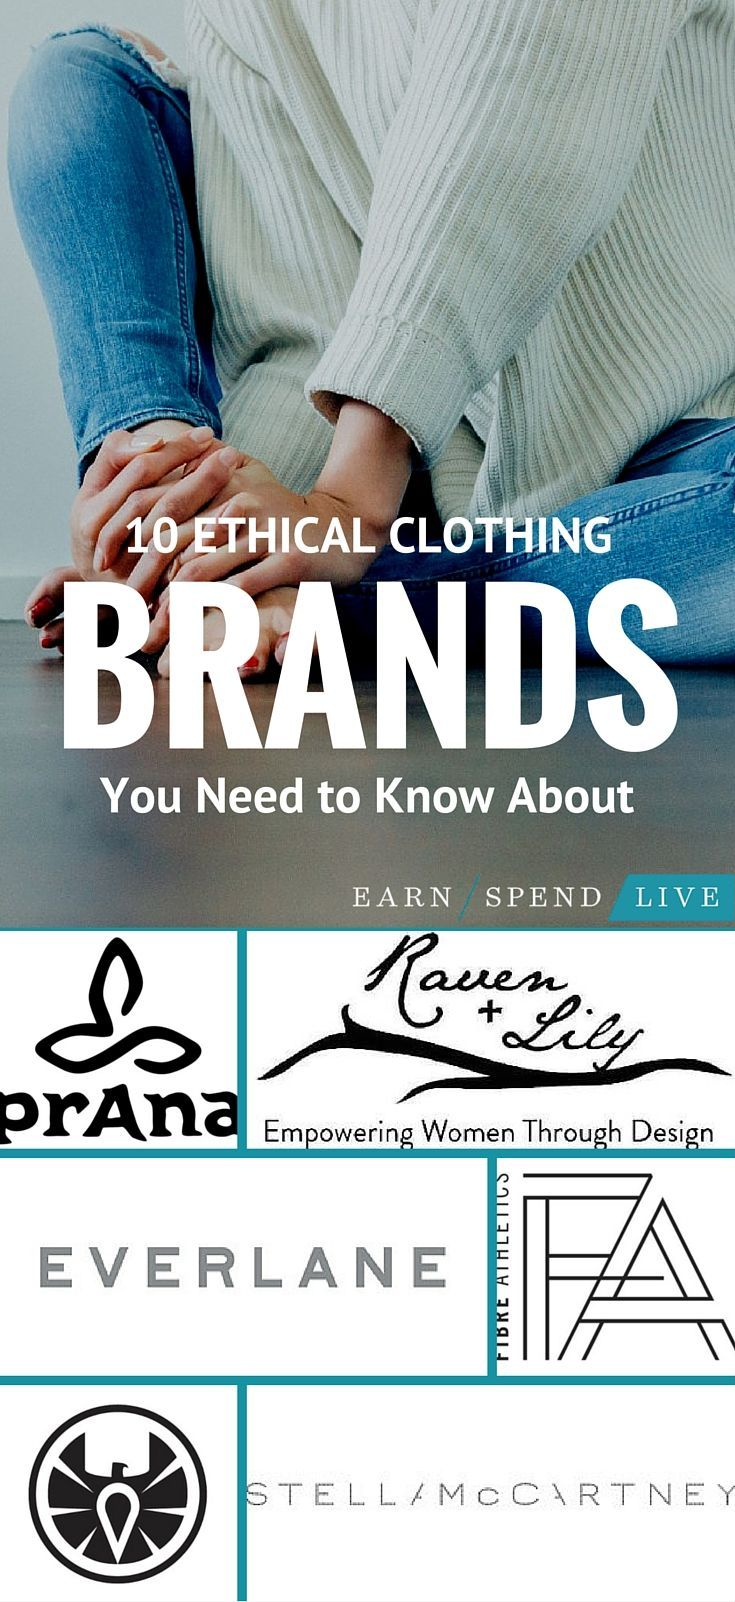 There are tons of ethical clothing brands out there that support fair trade and recyclable materials. Ethical clothing companies produce high quality items that will last you for years, and your business will help support the men, women, and children who rely on these companies for survival.